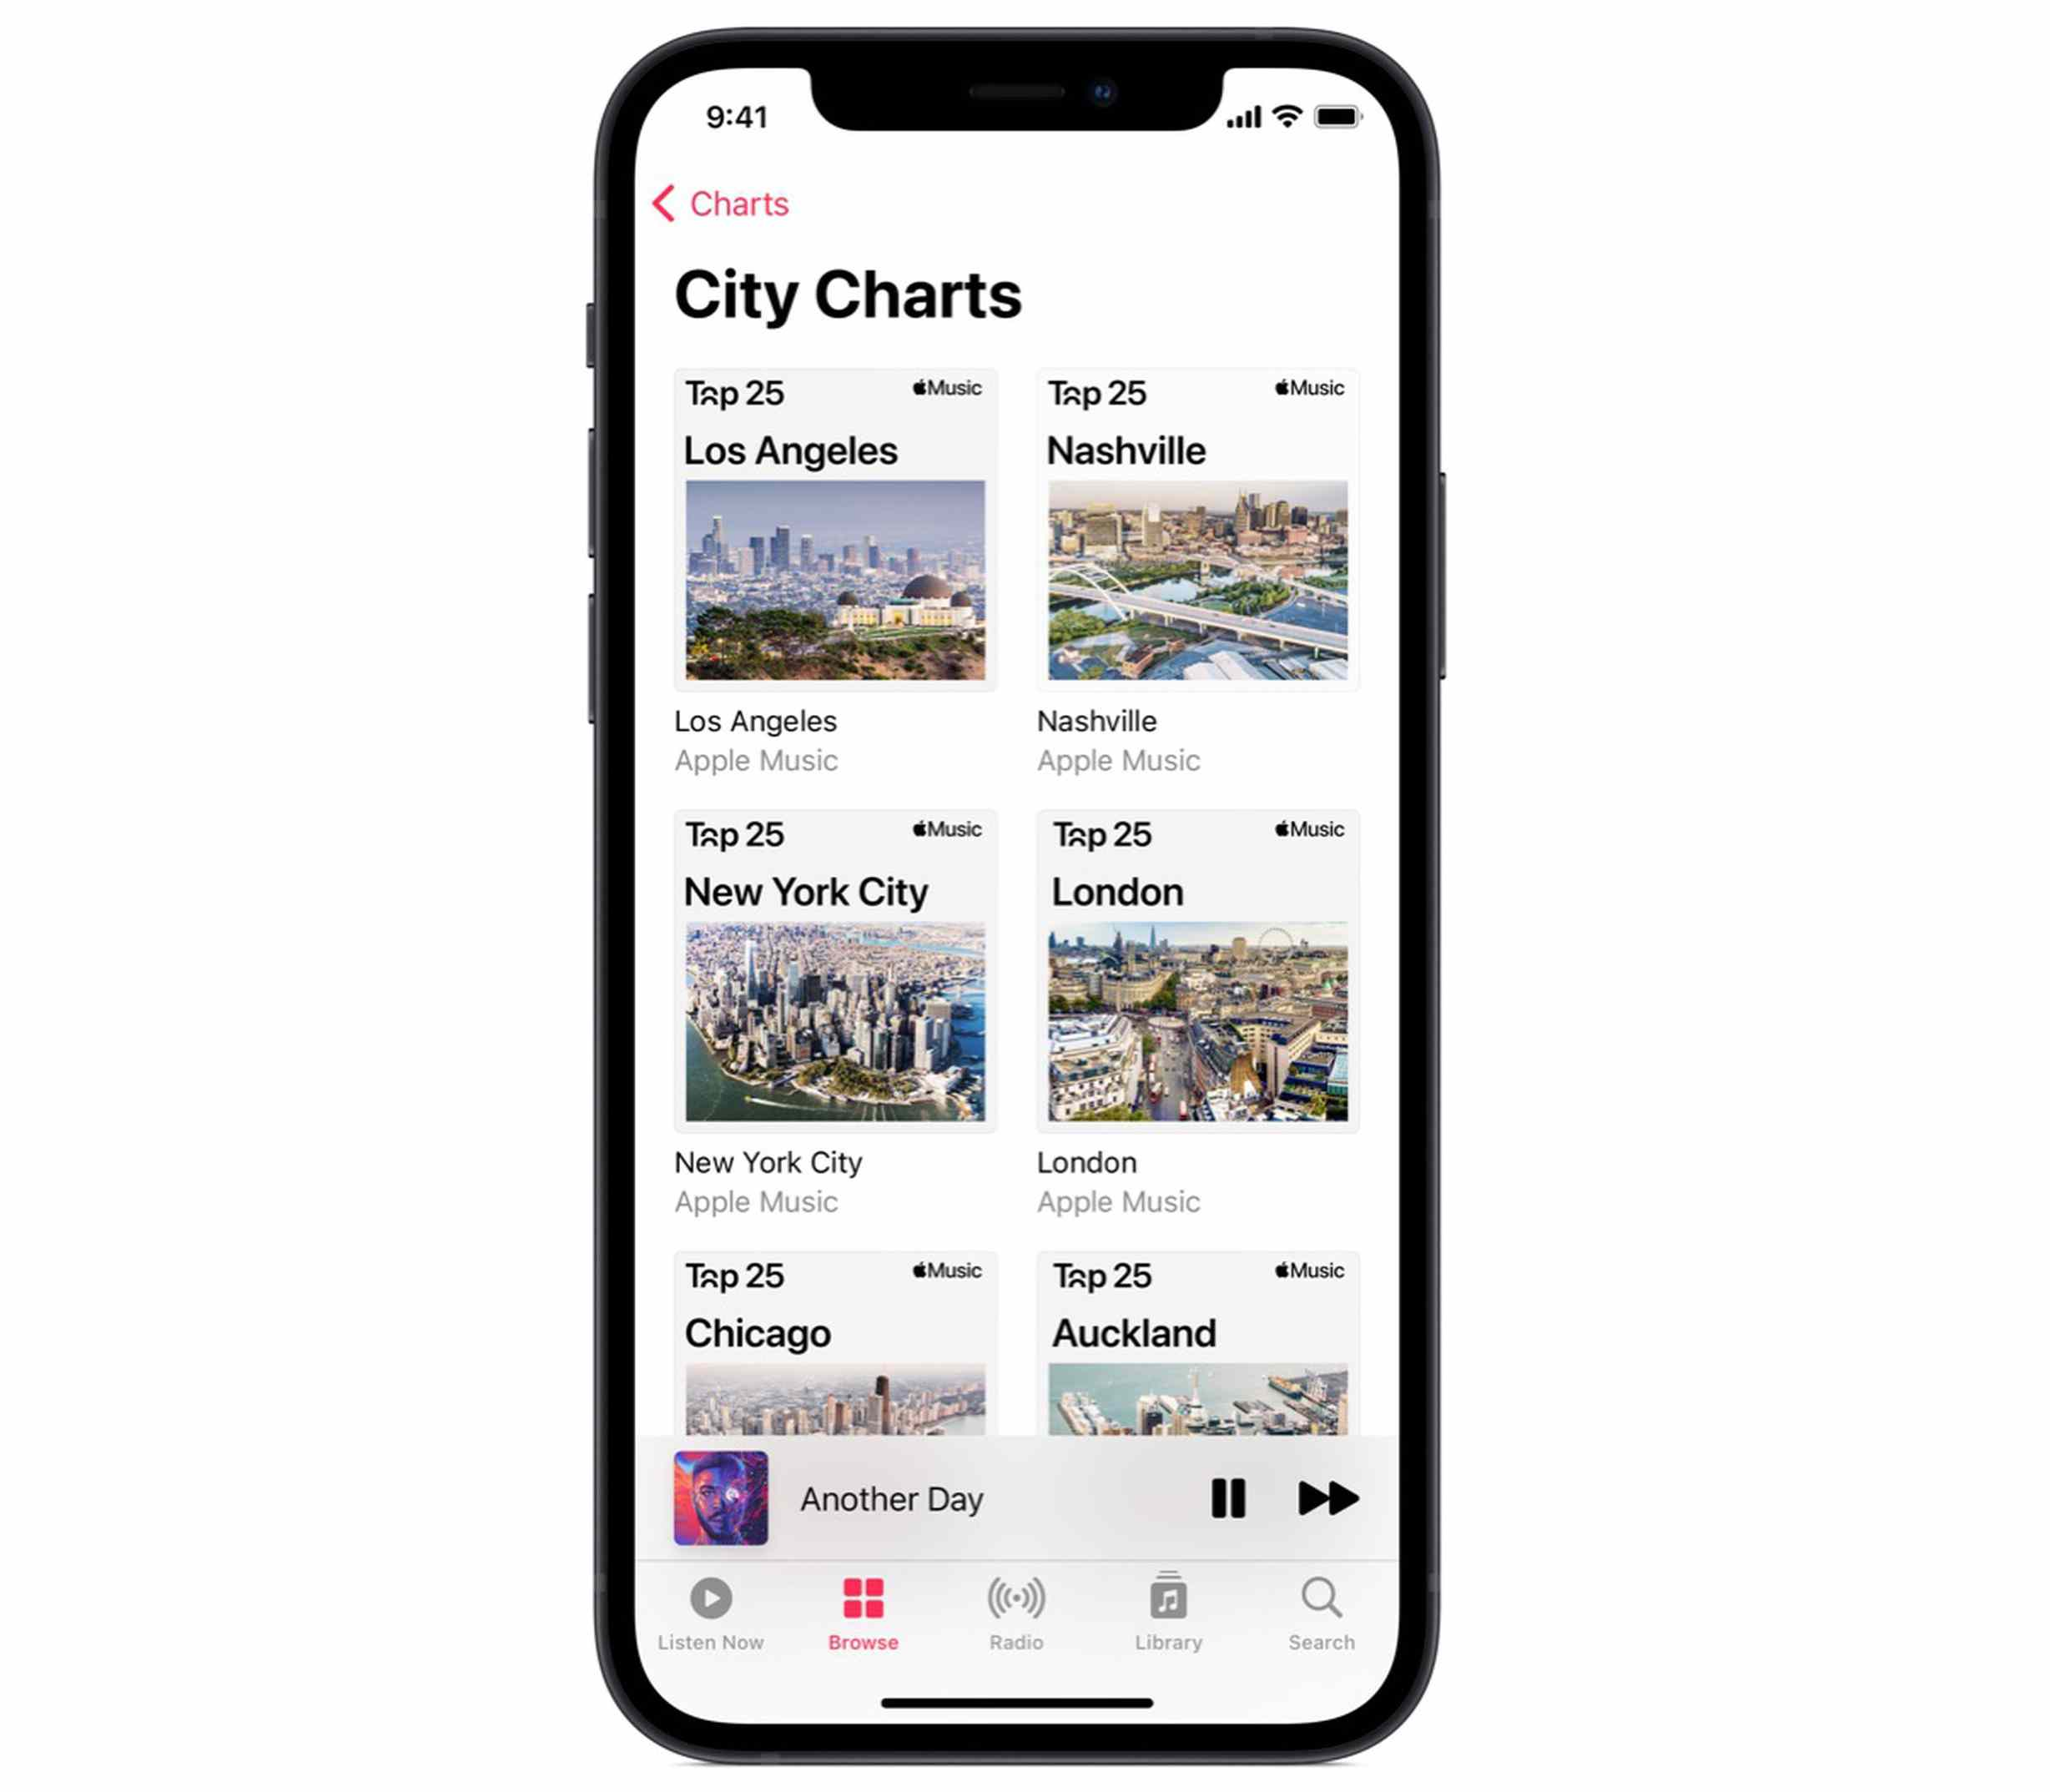 An Apple phone displaying City Charts in Apple Music.